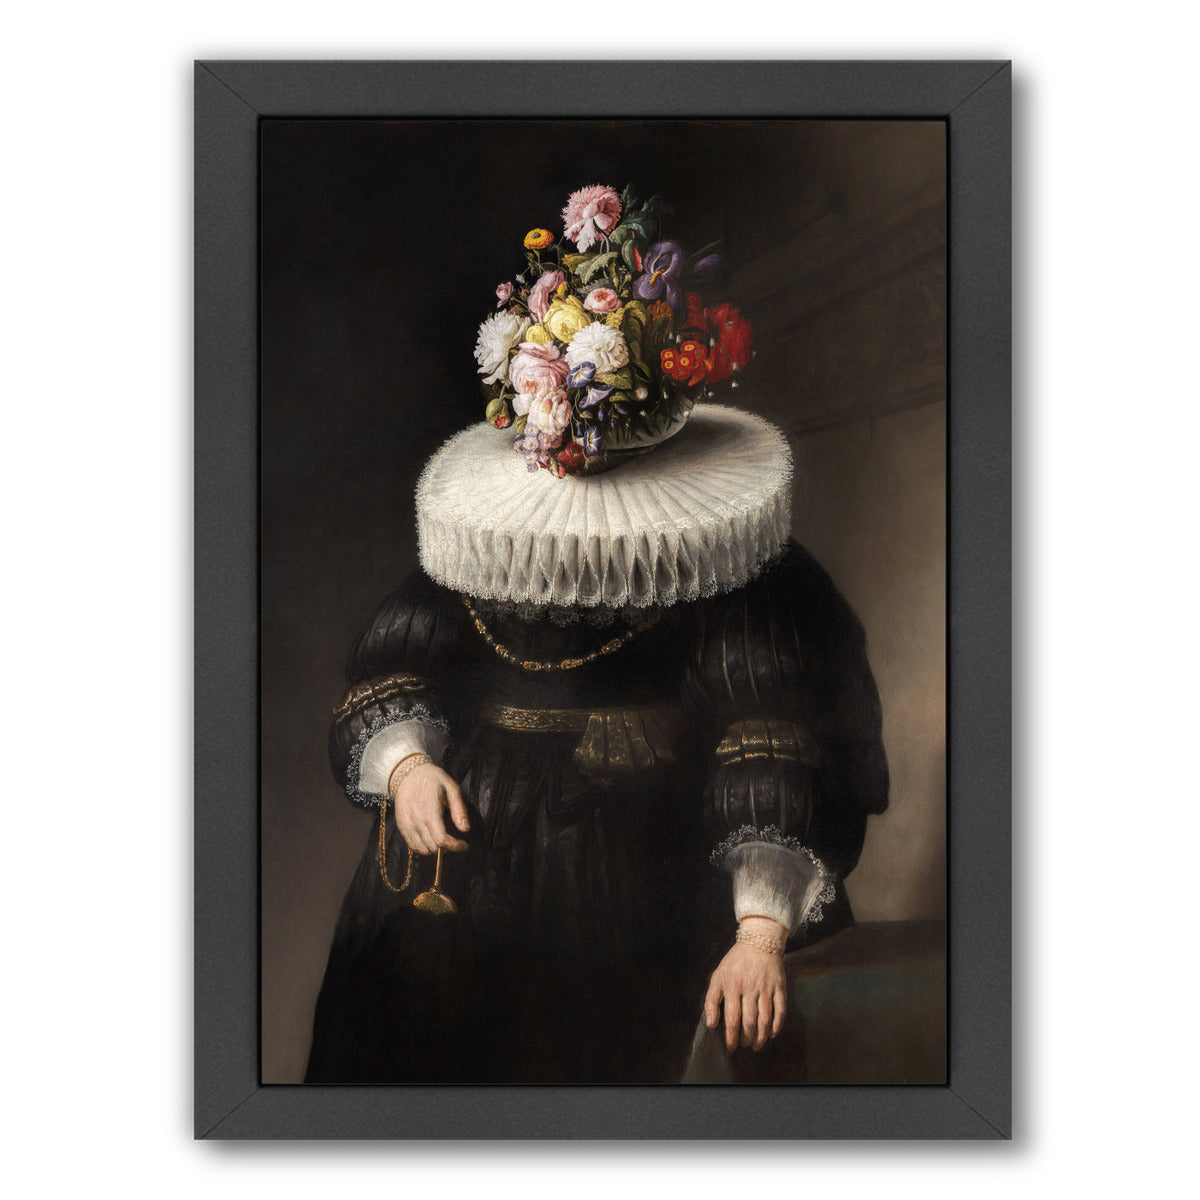 "Flower Portrait Dutch By Chaos & Wonder Design - Black Framed Print, Wall Art, Chaos & Wonder Design, 8"" x 10"""